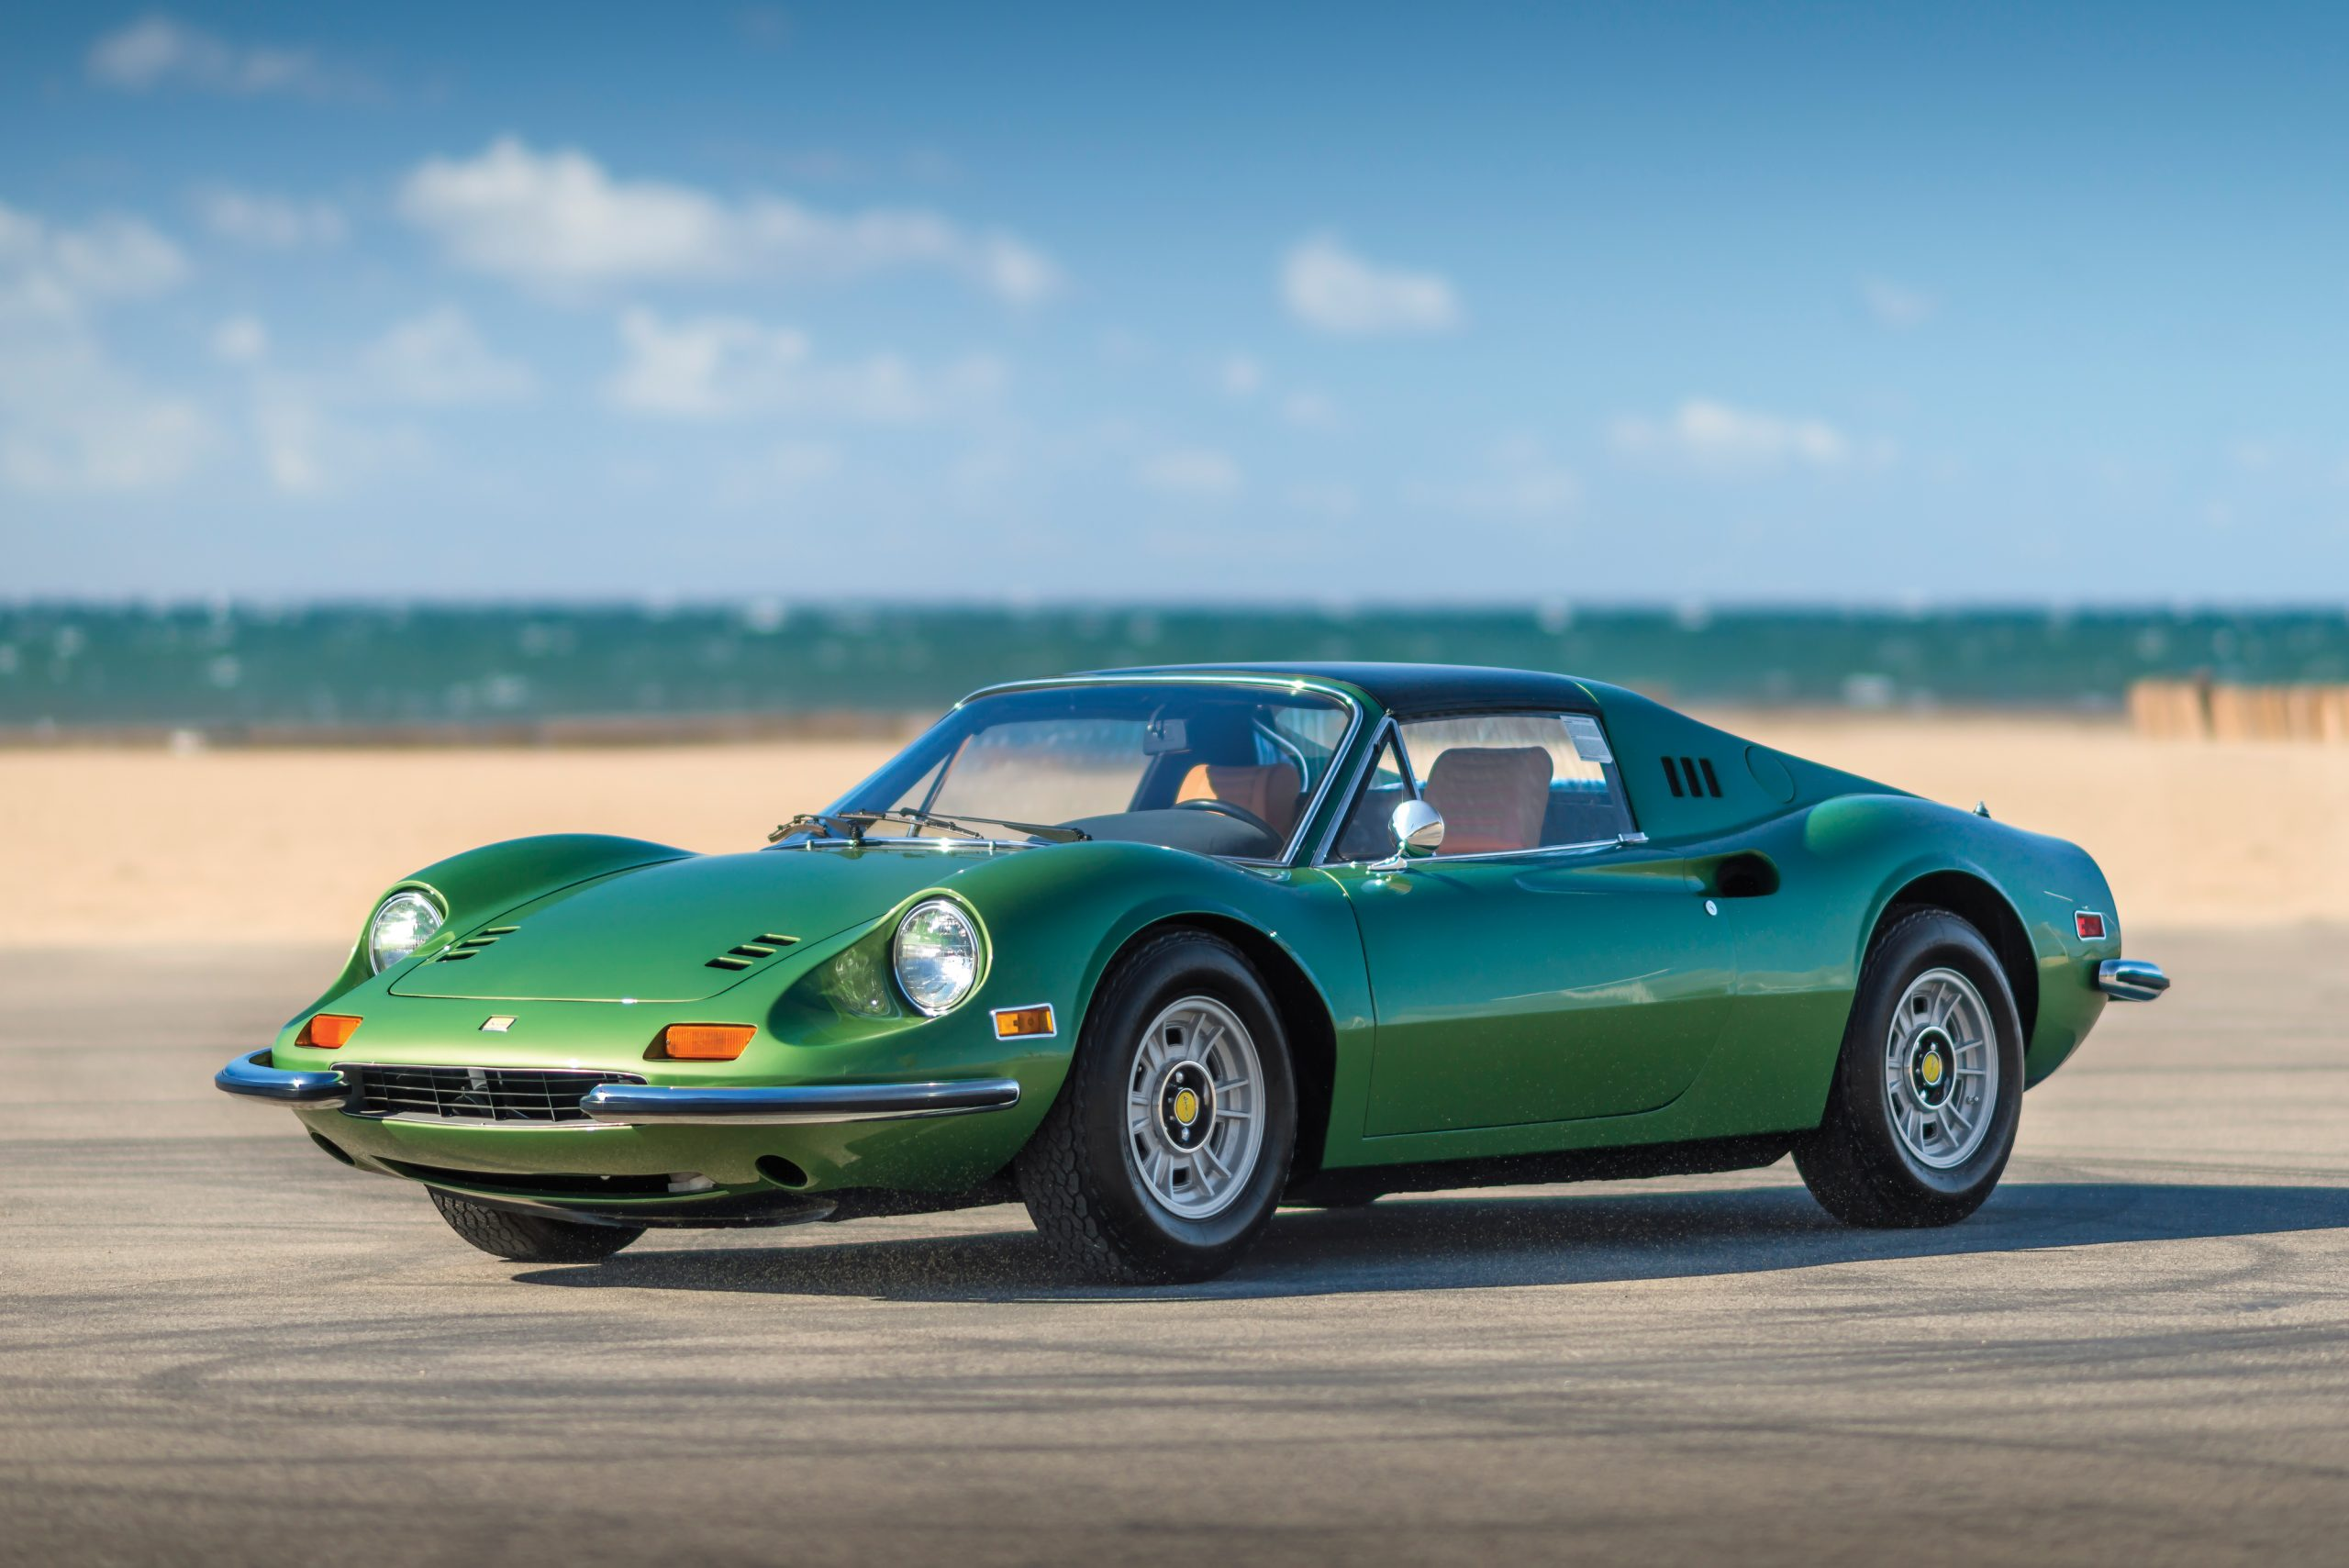 1974 Ferrari Dino 246 GTS by Scaglietti front three quarter